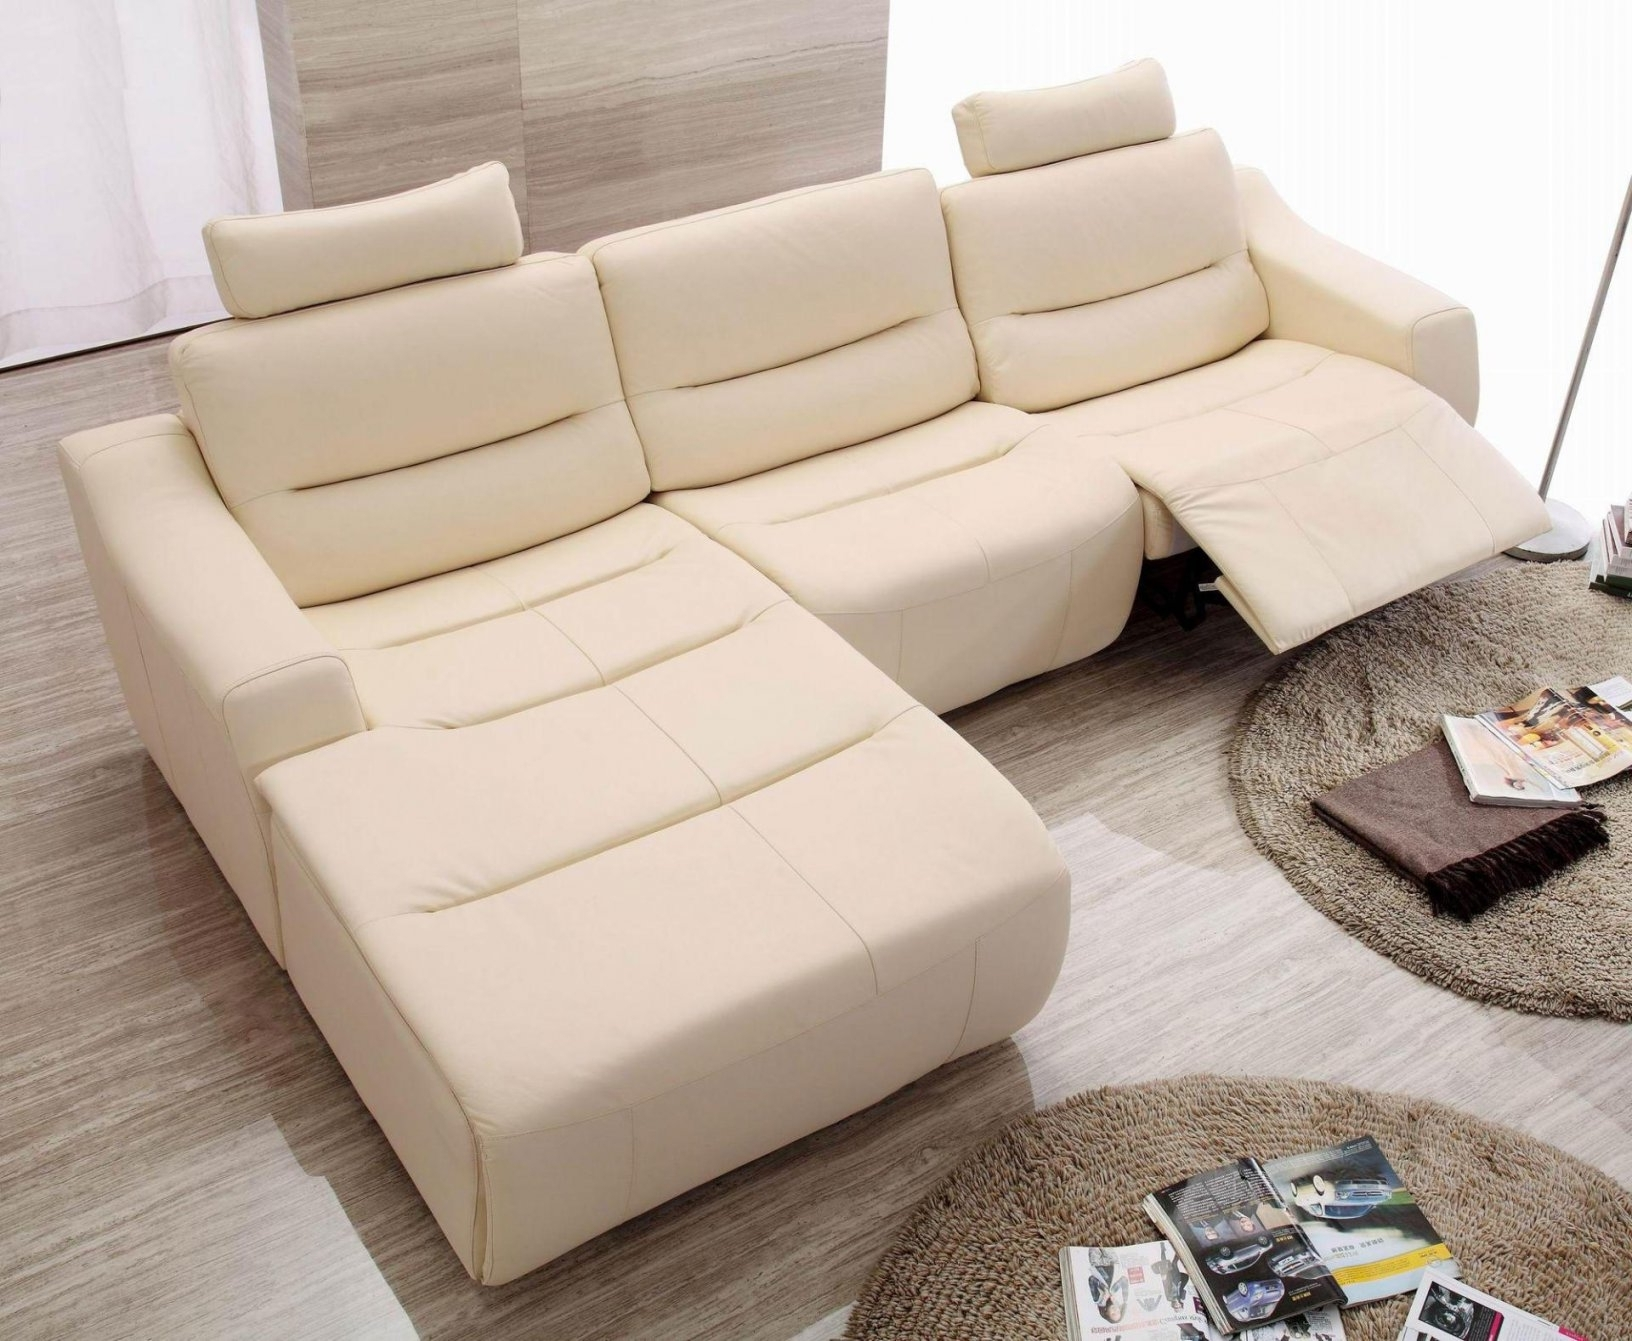 Favorite Modern Sectional Sofas For Small Spaces Regarding Sectional Sofas For Small Spaces 14 About Remodel Regarding Modern (View 5 of 20)